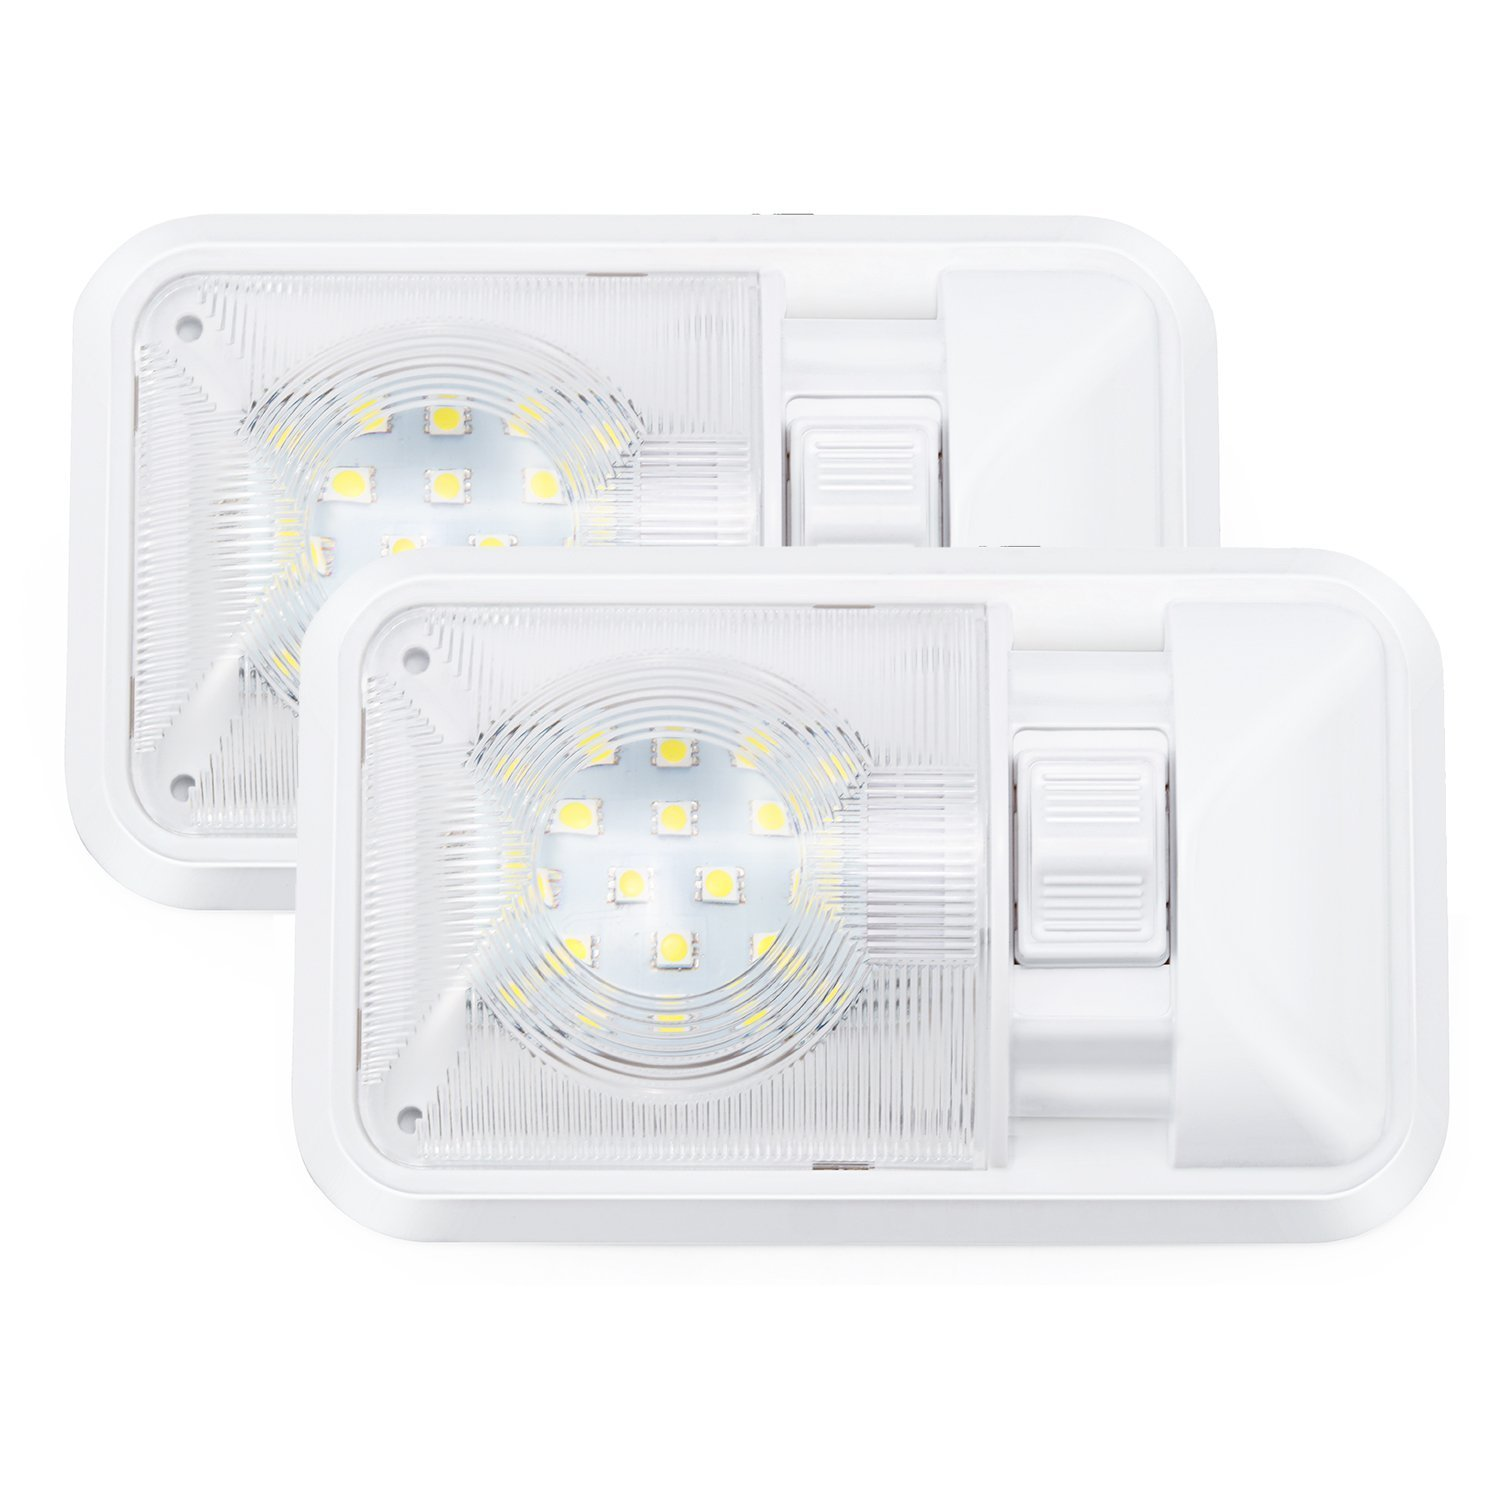 Kohree 12V Led RV Ceiling Dome Light RV Interior Lighting for Trailer Camper  with Switch,